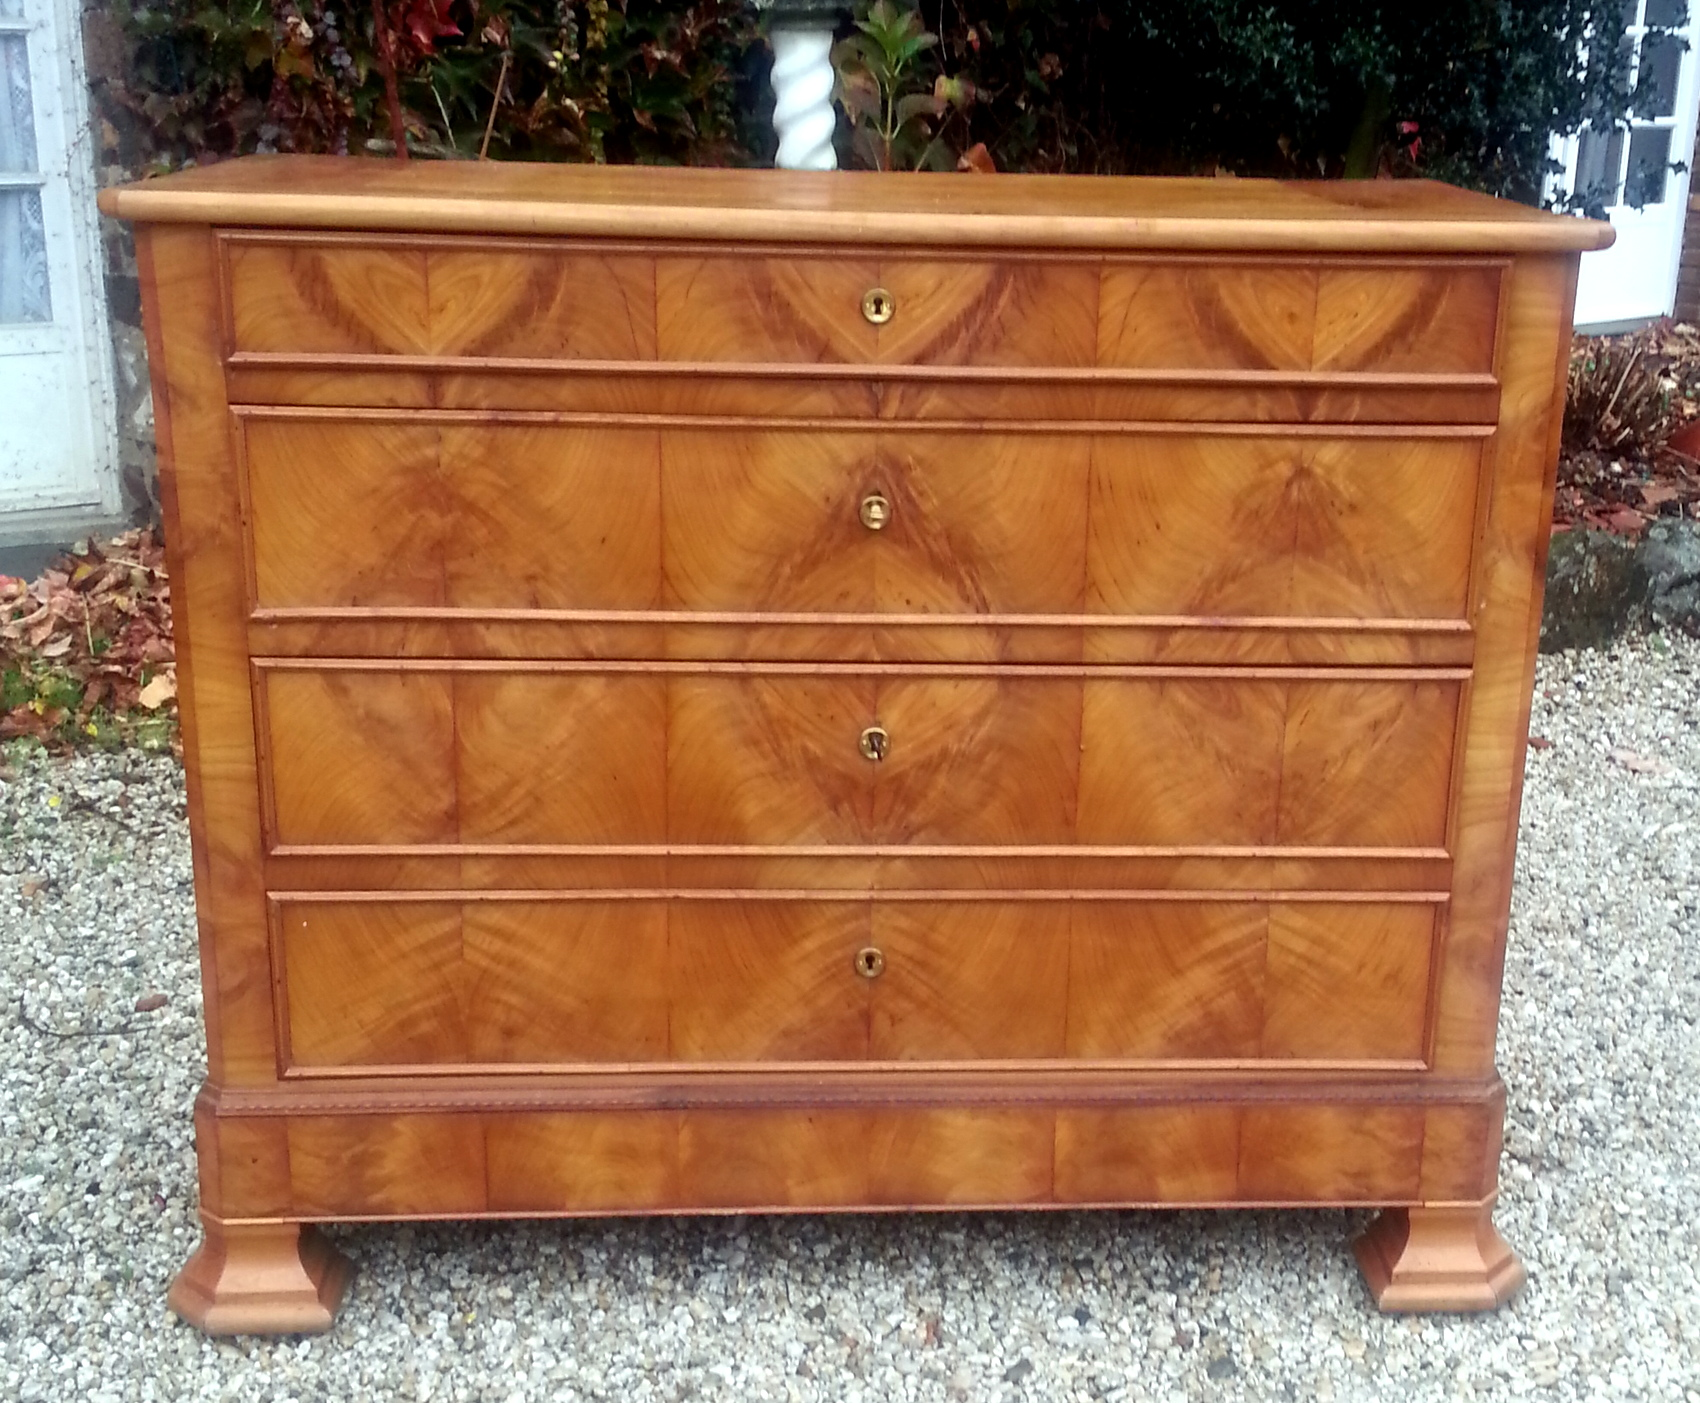 COMMODE STYLE LOUIS PHILIPPE MERISIER/ LOUIS PHILIPPE STYLE CHERRY TREE CHEST OF DRAWERS